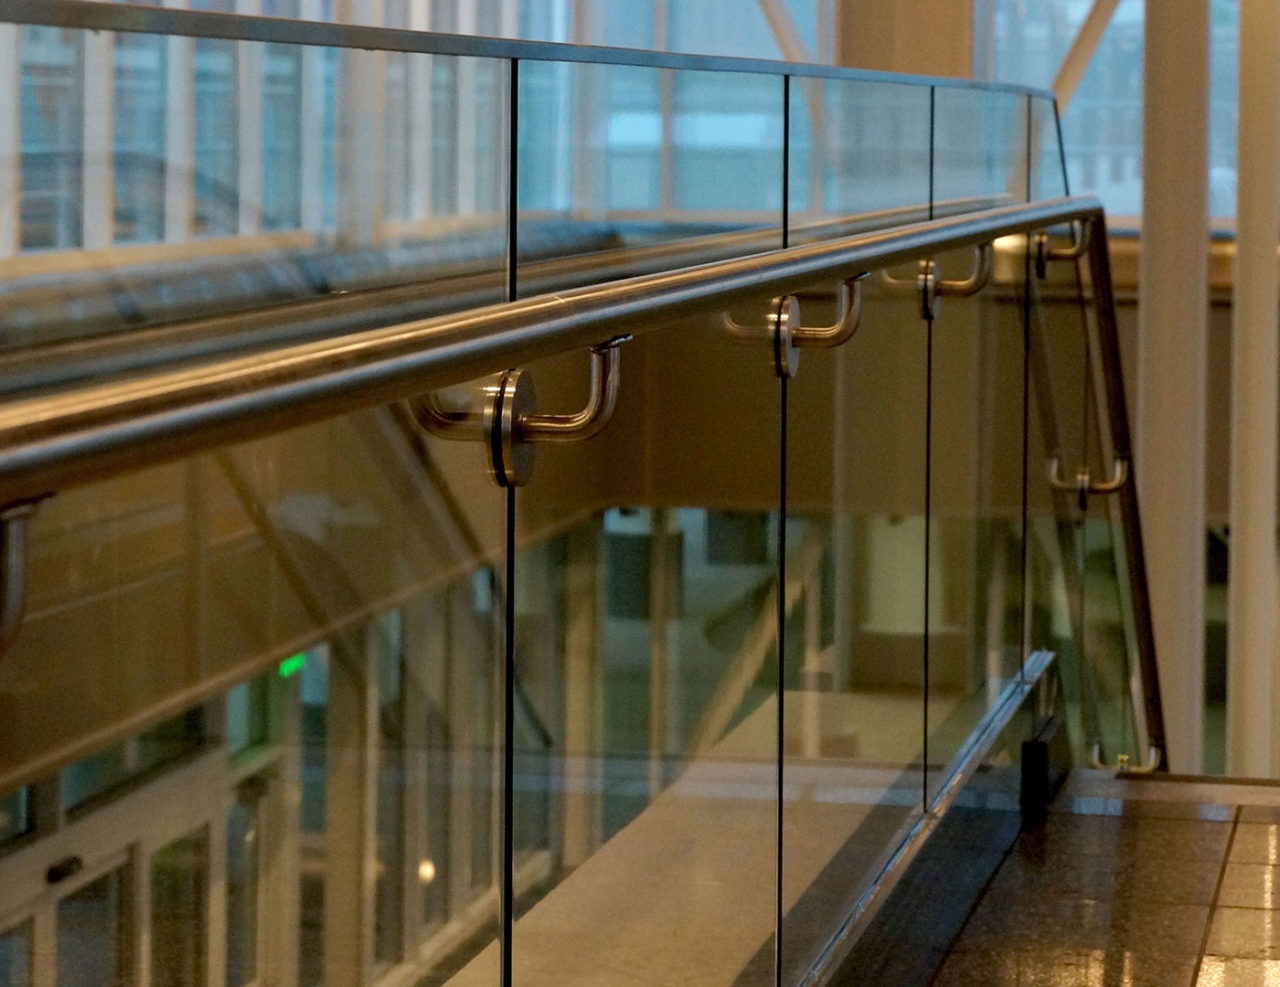 top cap and stainless steel handrail